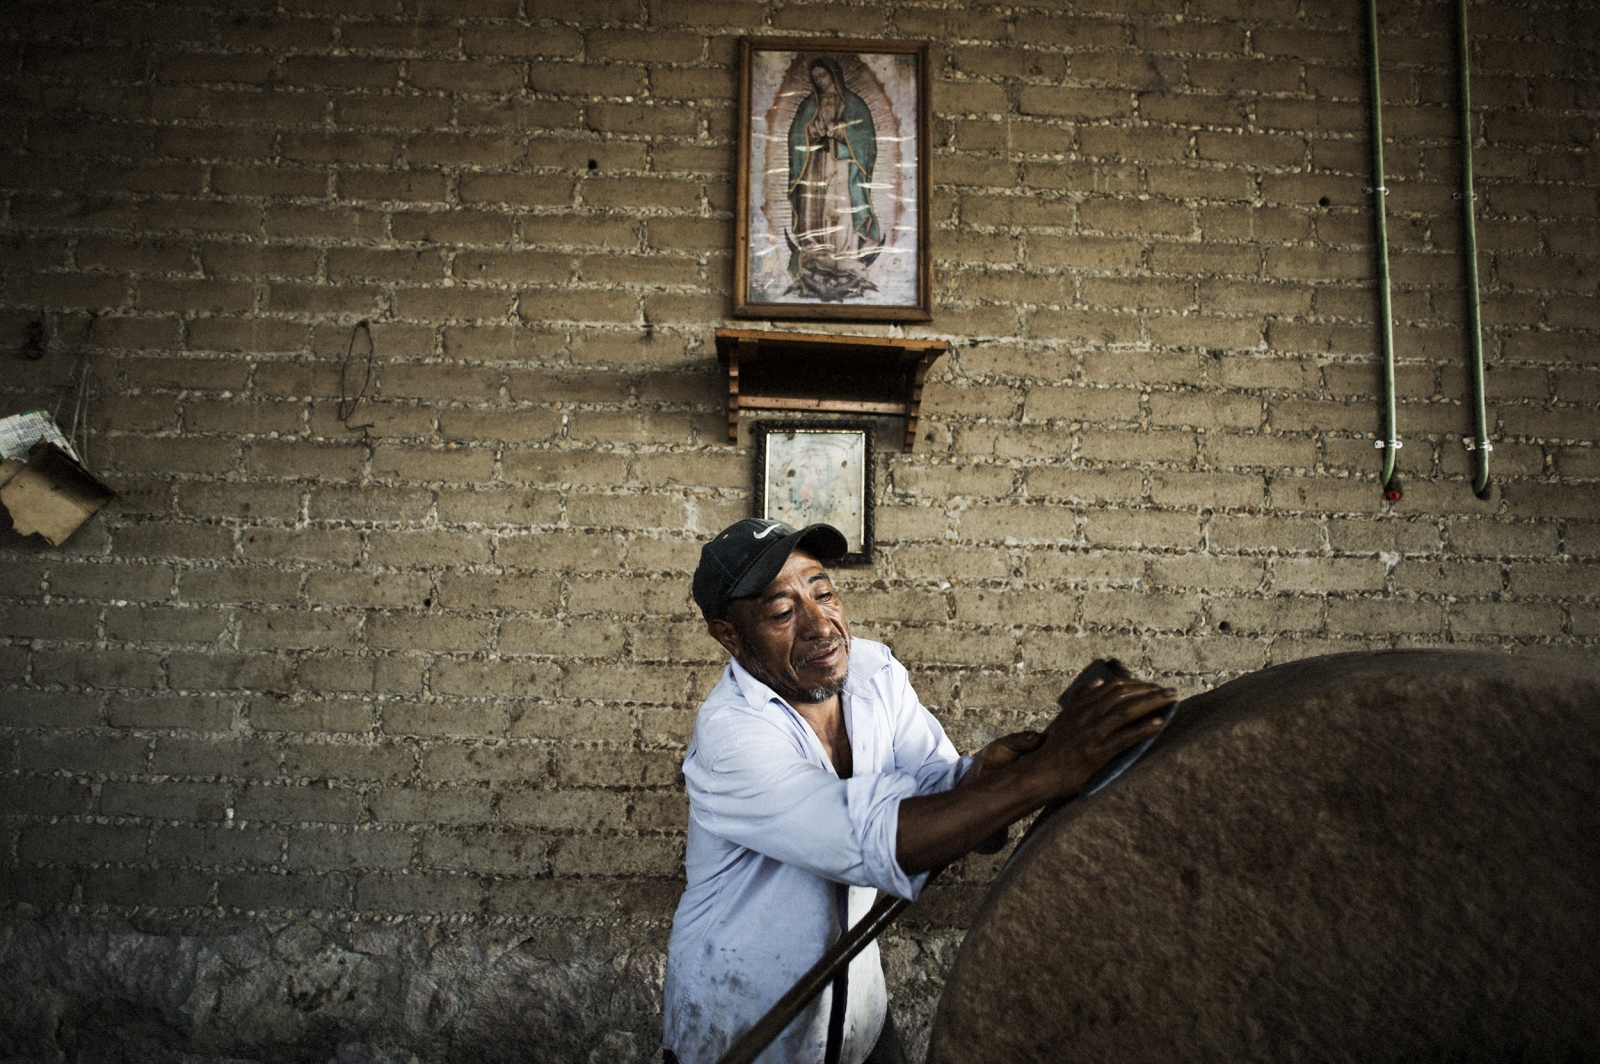 From the religious connection of the agave to the people, to the origianal wood and stone tools used to create it, mezcal traditions are passed from generation to generation in Oaxaca.